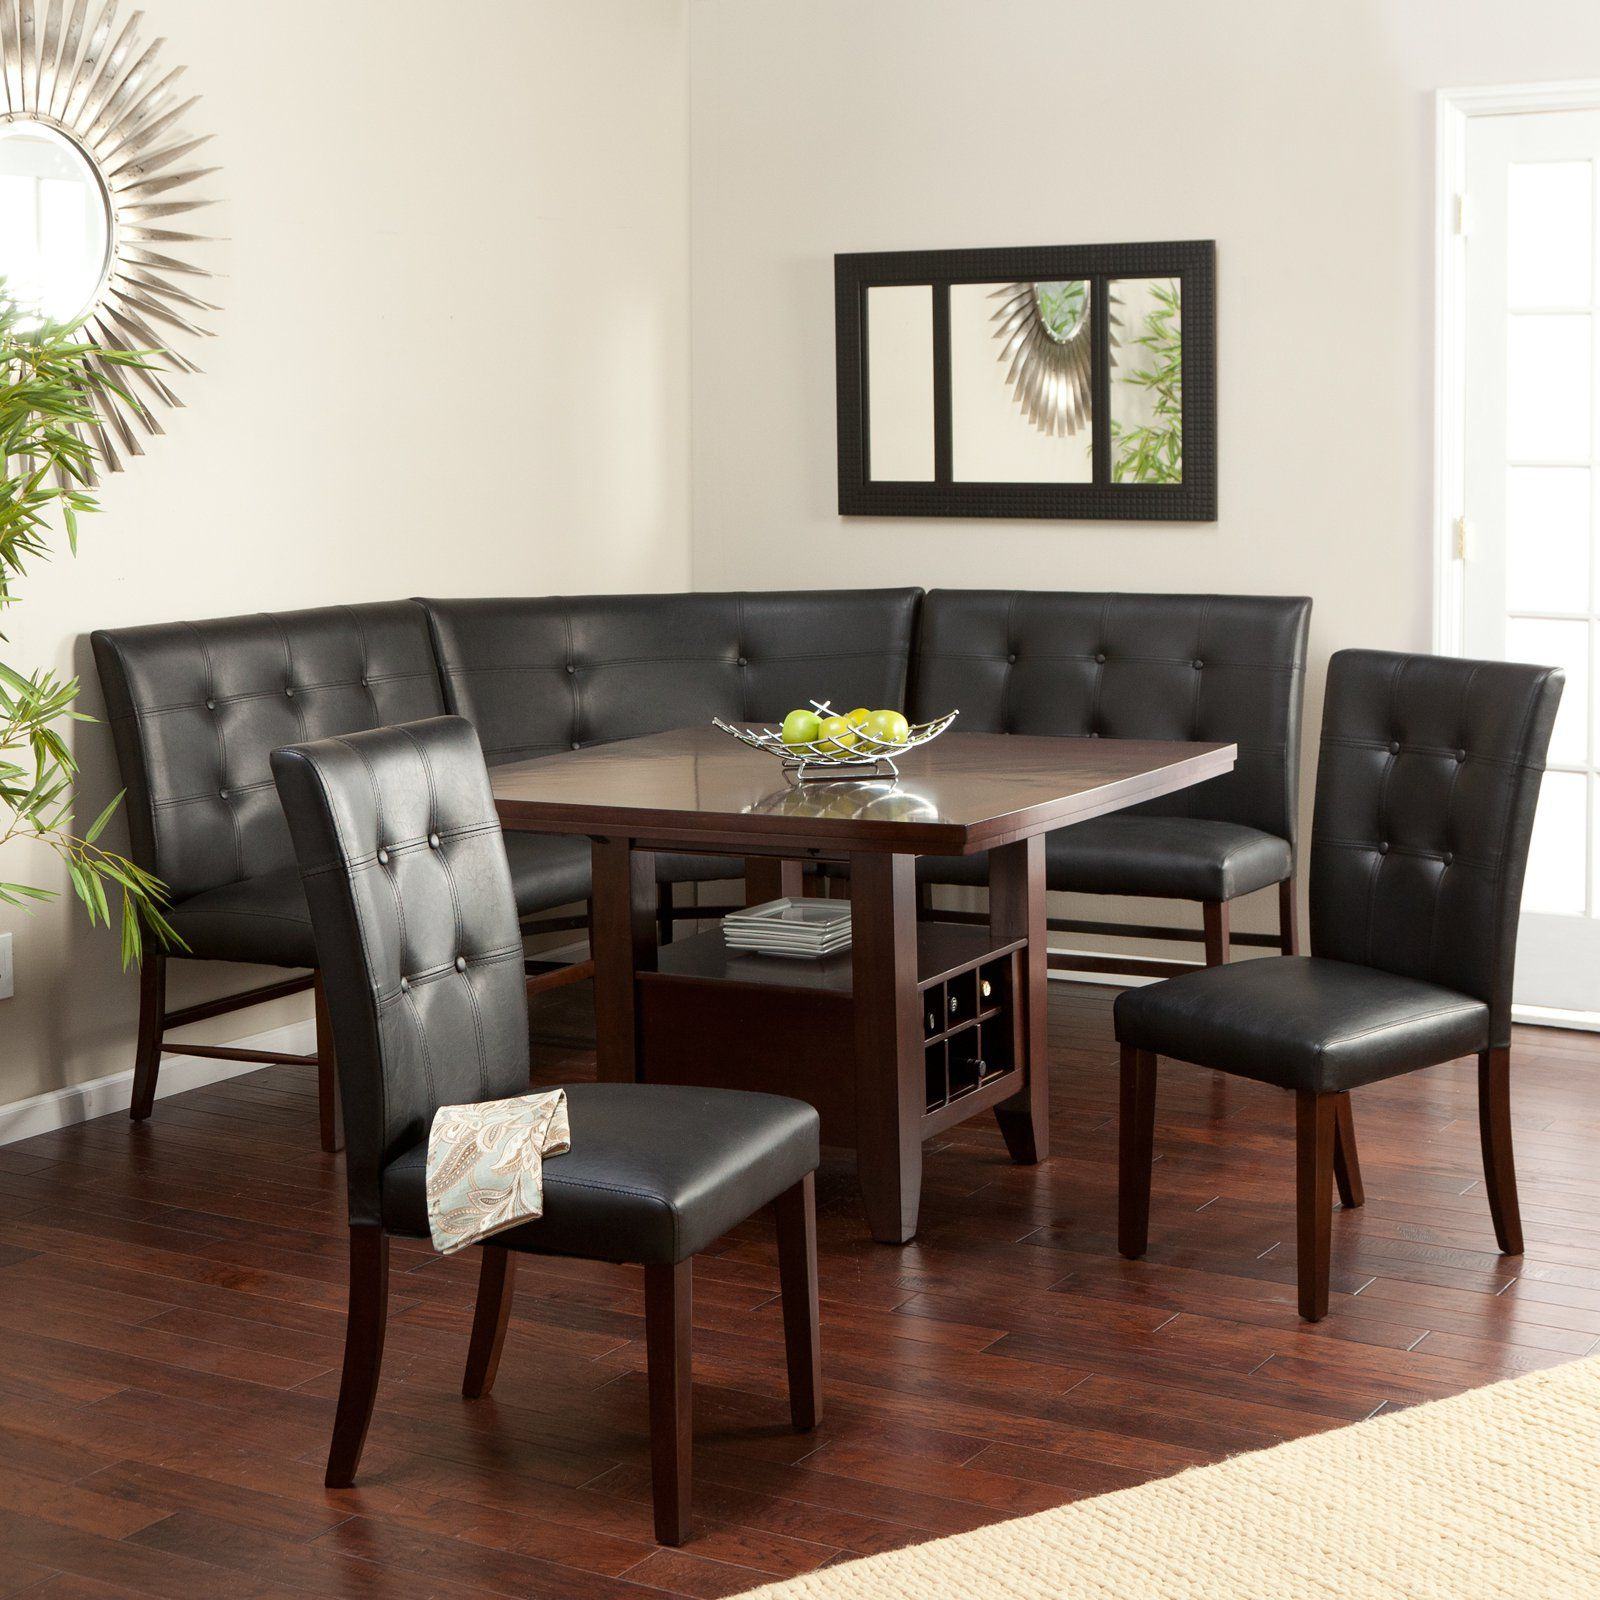 Layton Espresso 6 Piece Breakfast Nook Set   $899.98 @. Kitchen Dining  TablesDining Room SetsCorner ...